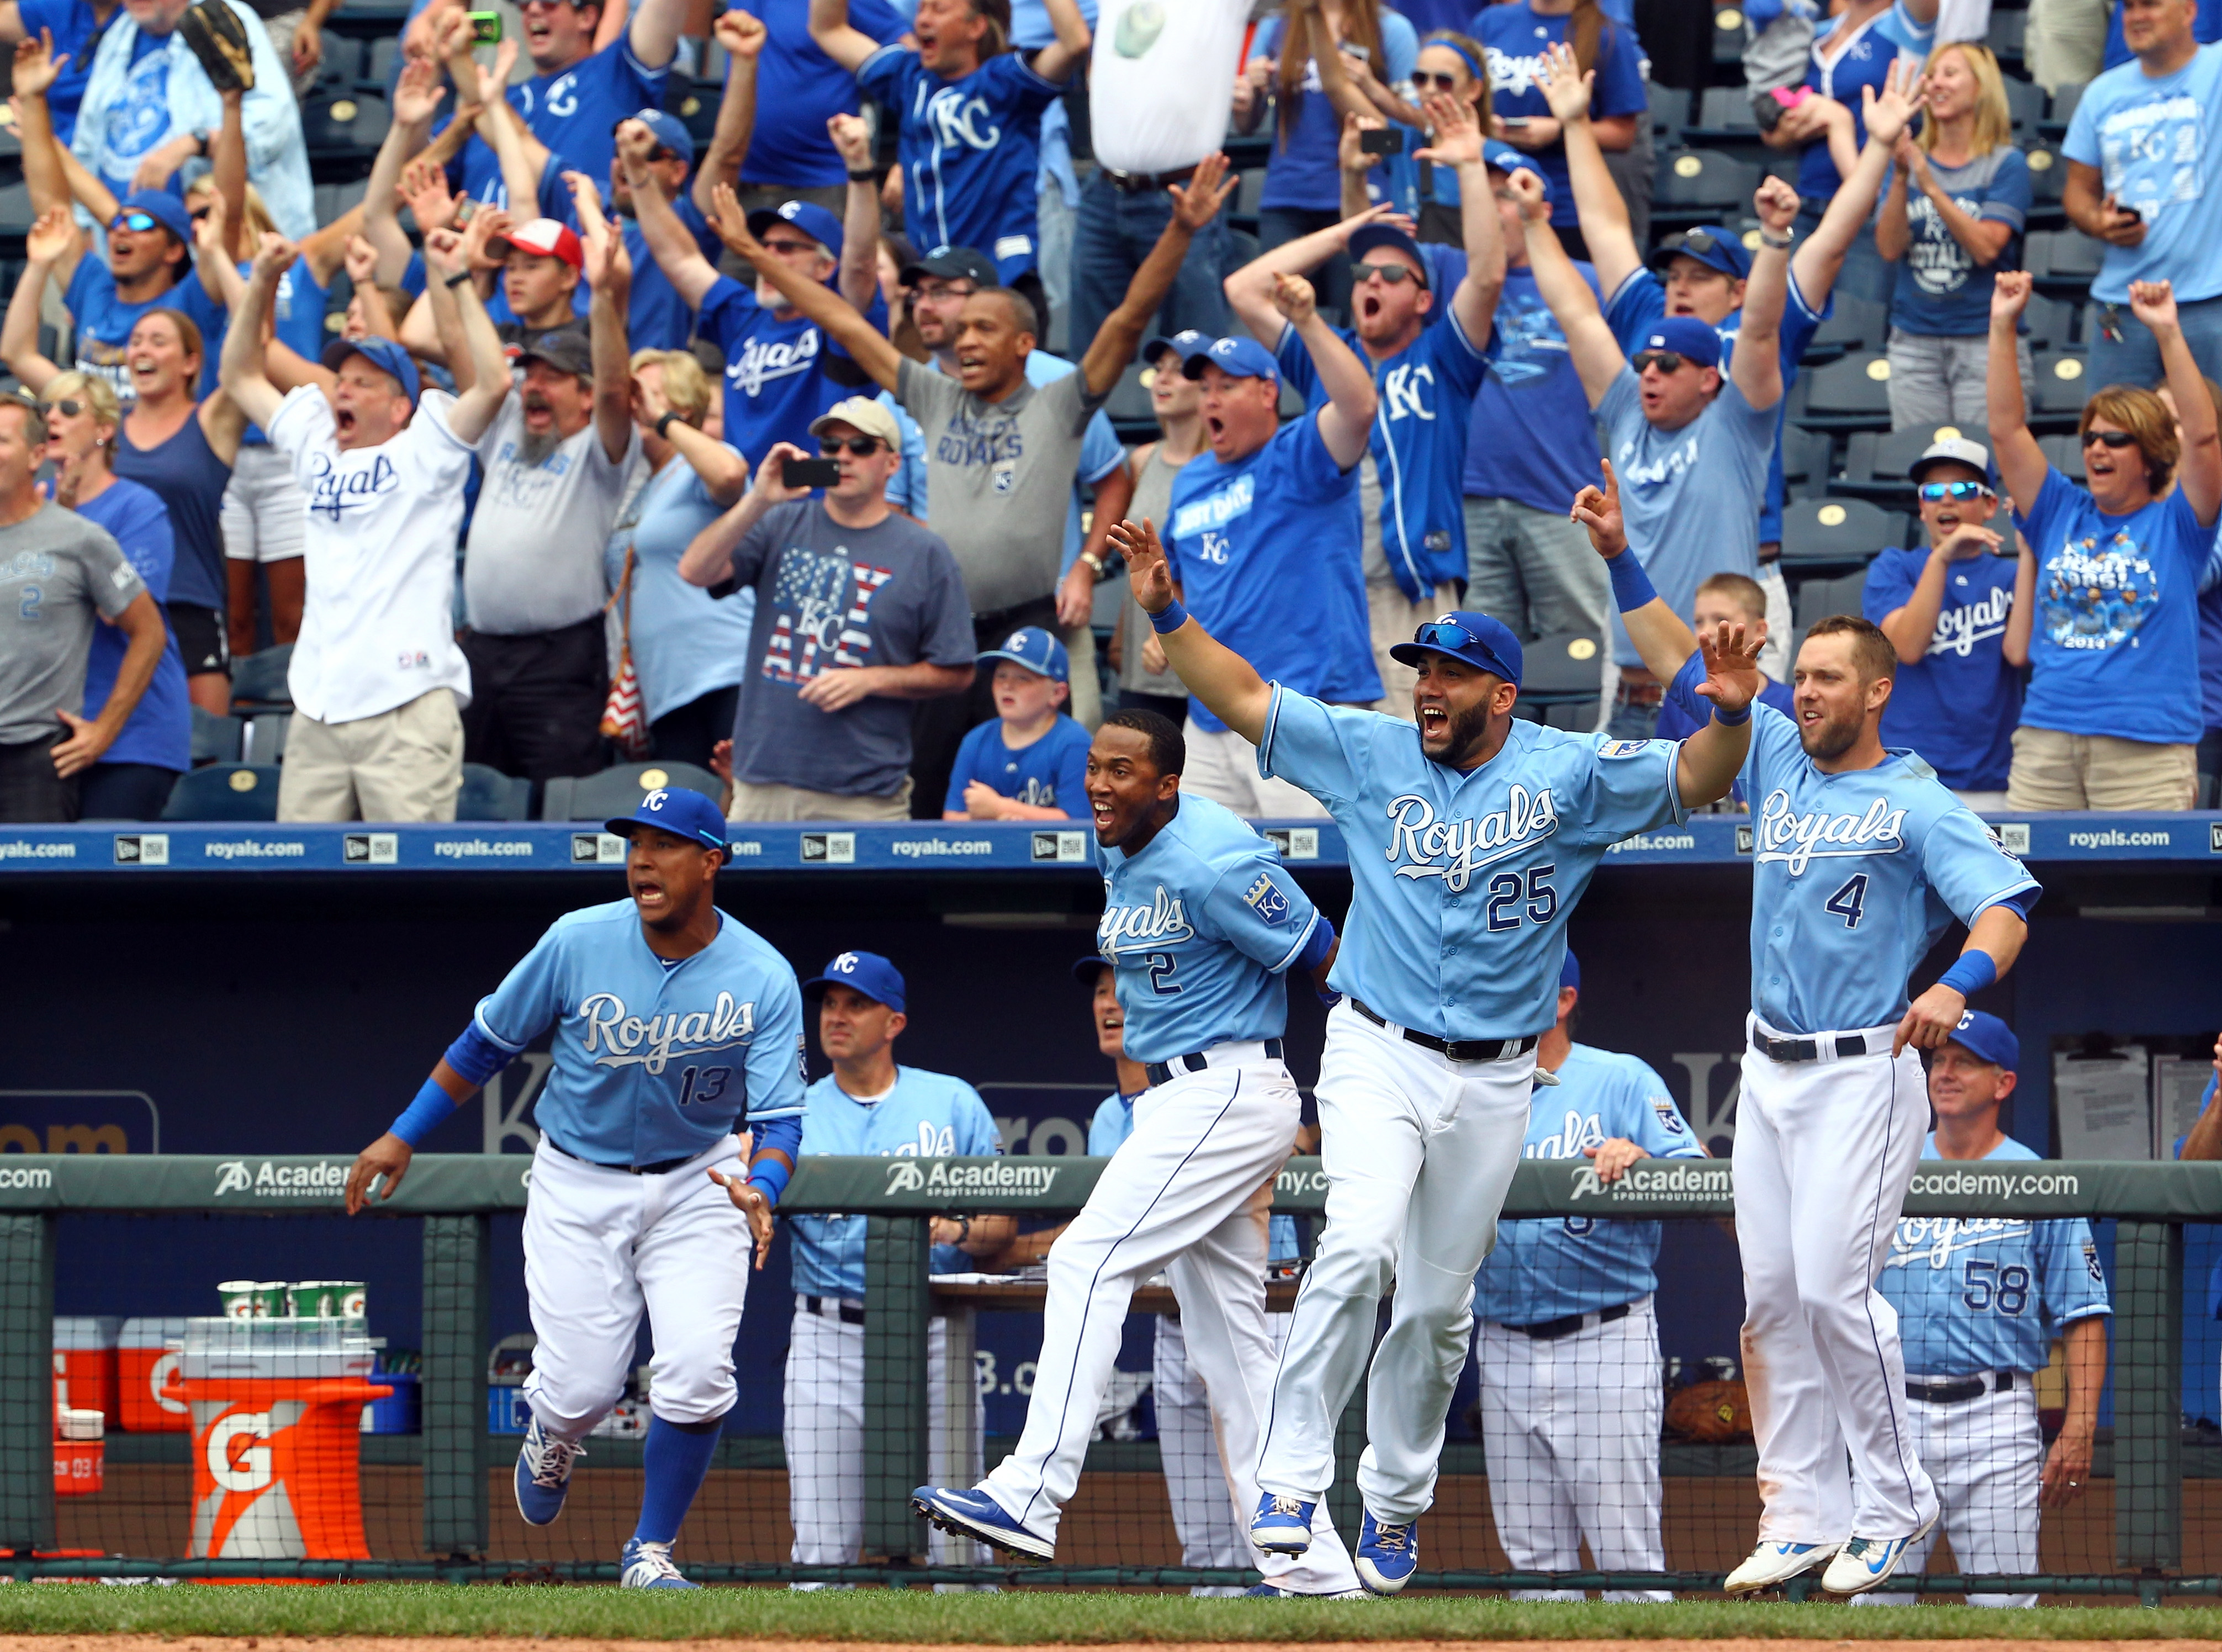 Paulo Orlando's July 7 walkoff grand slam was a highlight of the first half.